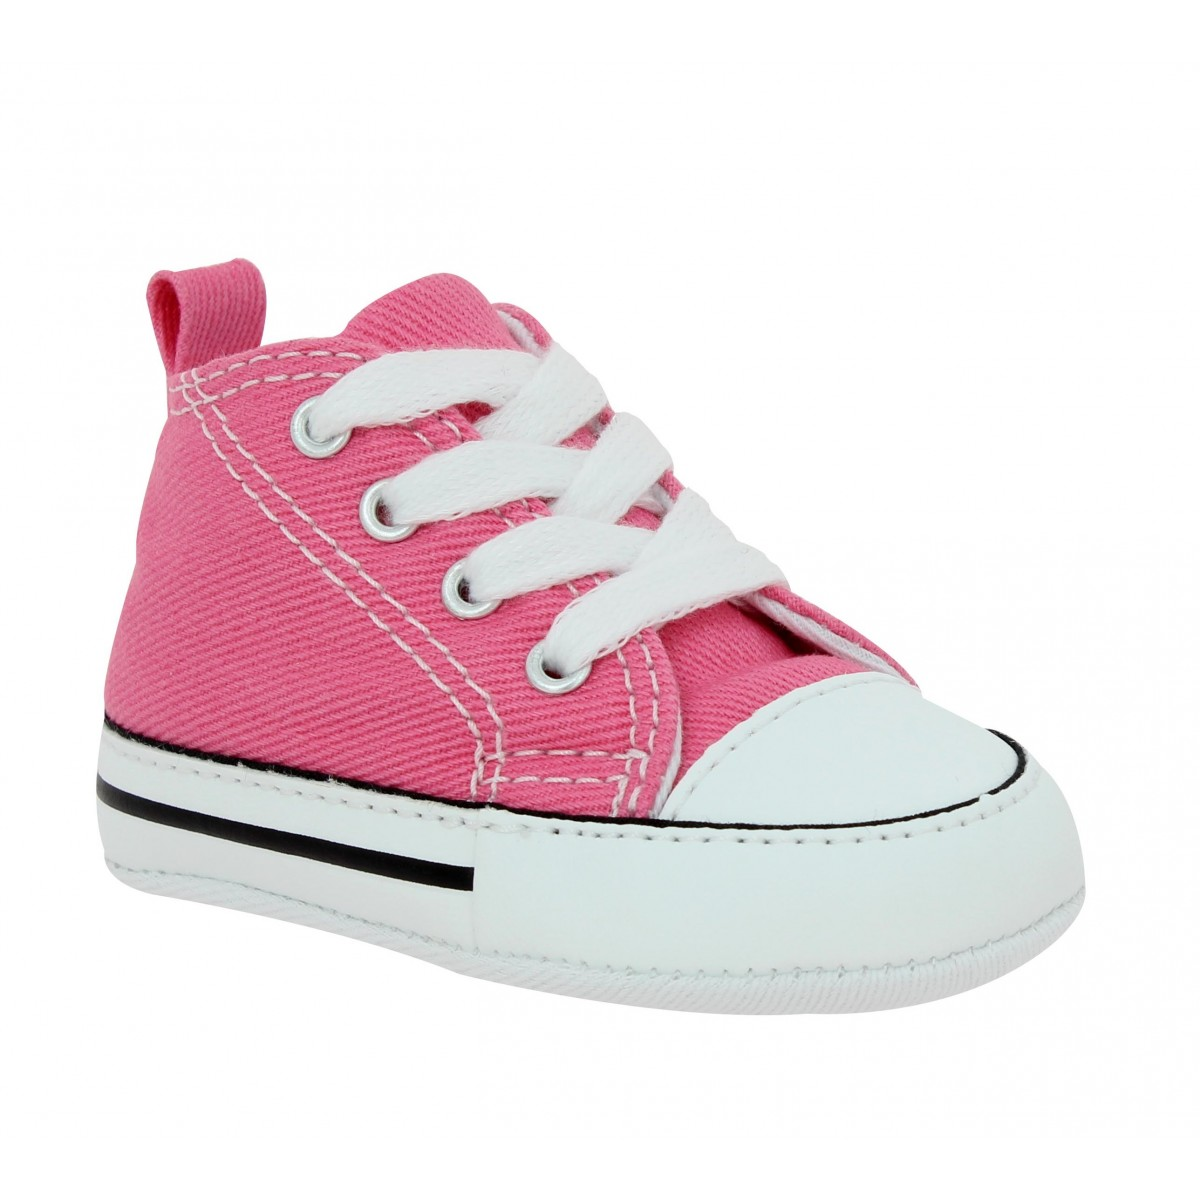 Baskets CONVERSE First Star toile Enfant Rose